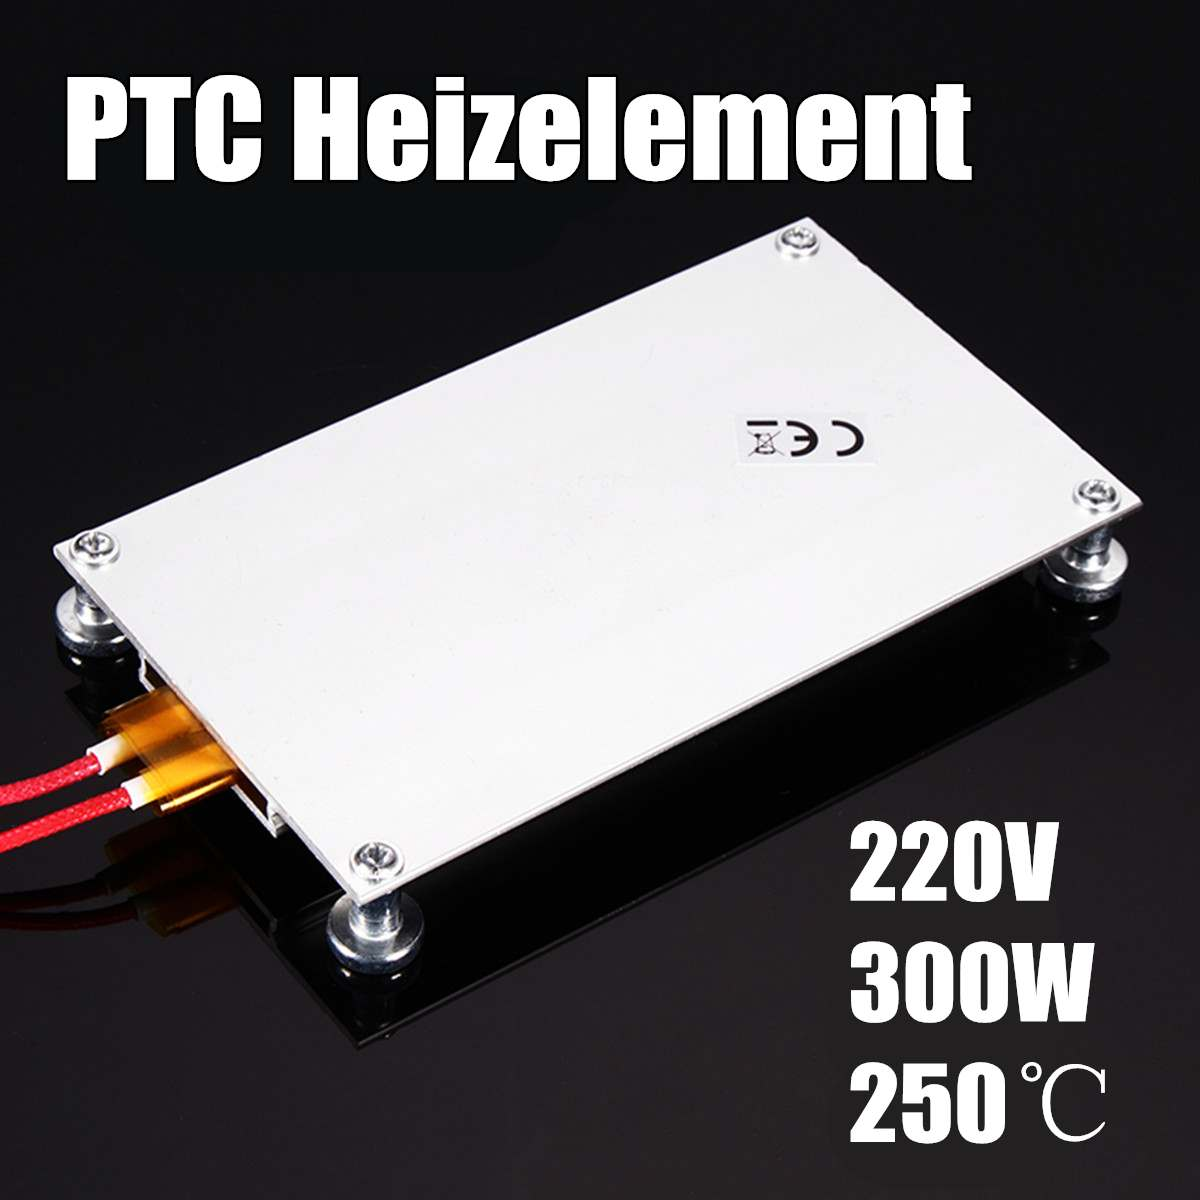 220V 300W LED Remover PTC Heating Soldering Chip Welding Station Split Plate Sheet Board Welding Equipment Tools Solder